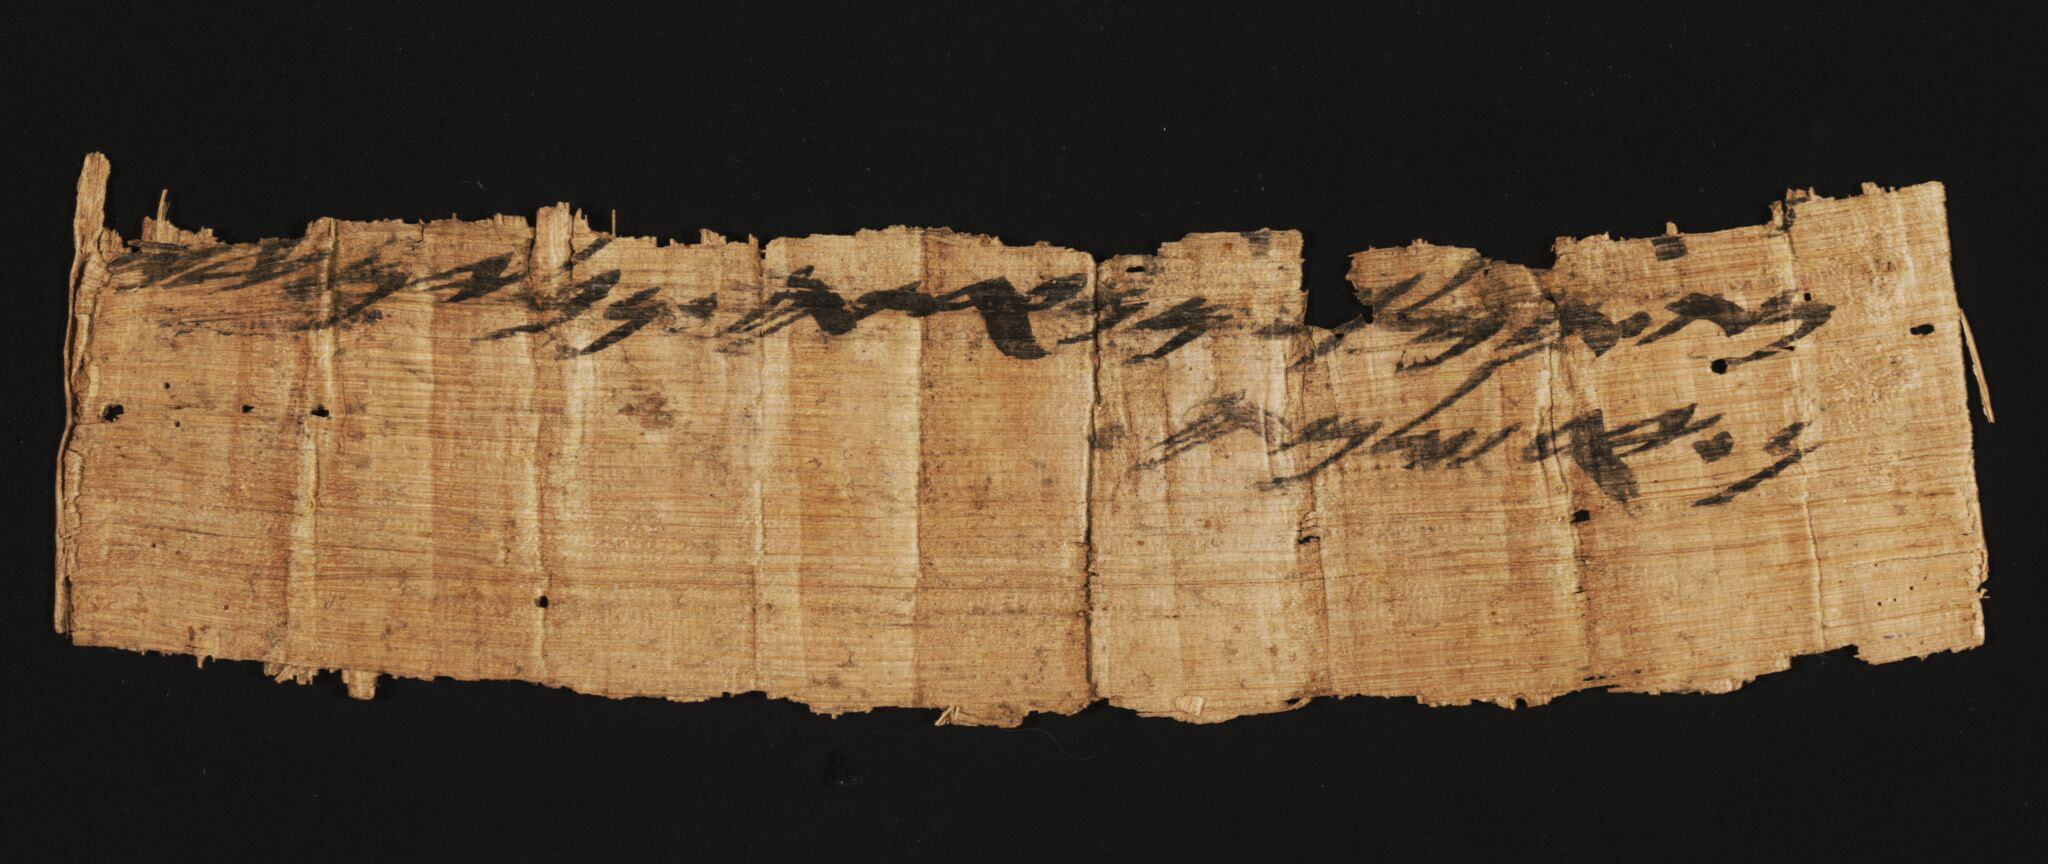 an analysis of the dead sea scrolls in the jordan desert Tour guides shepherding the tourists through the modest desert ruins speak of the scrolls' origin no consensus about who actually wrote the dead sea scrolls between israel and jordan along the dead sea.